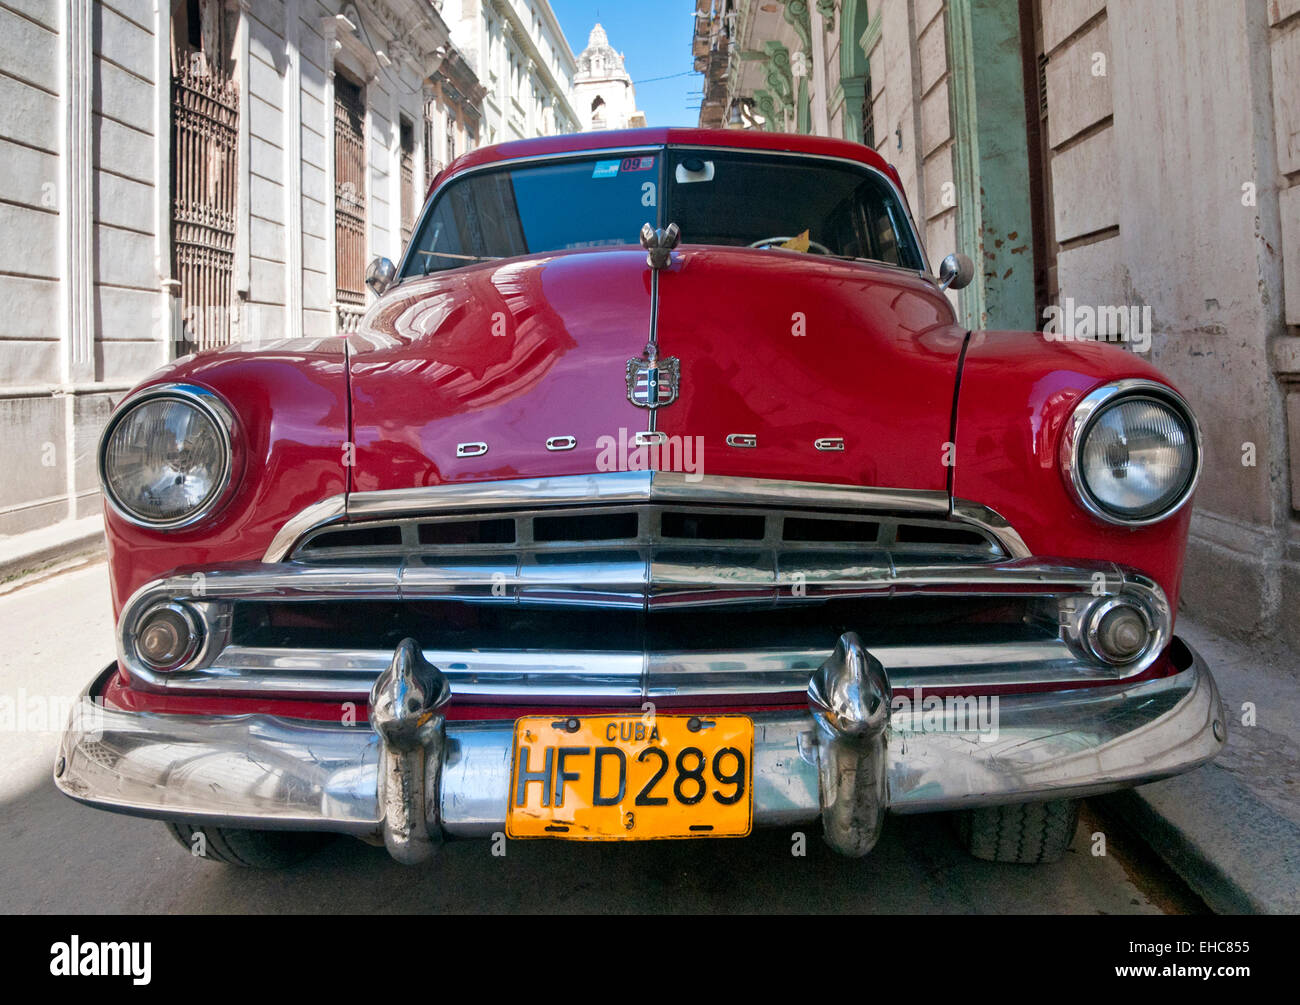 Red 1950s American Dodge Classic Car on Calle Cuba, Habana Vieja, Havana, Cuba - Stock Image